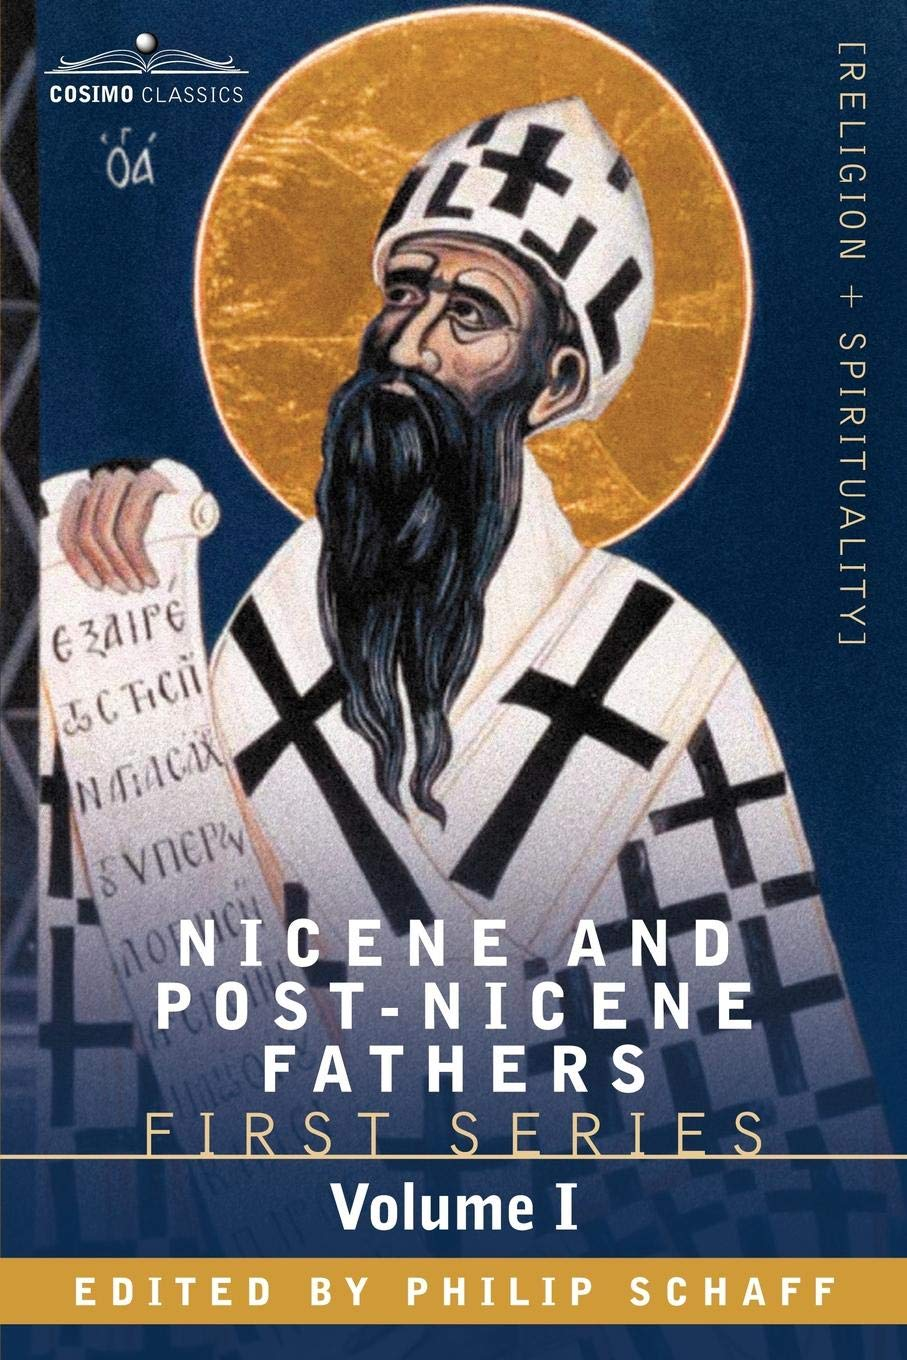 Nicene and Post-Nicene Fathers: First Series Volume I - The Confessions and Letters of St. Augustine pdf